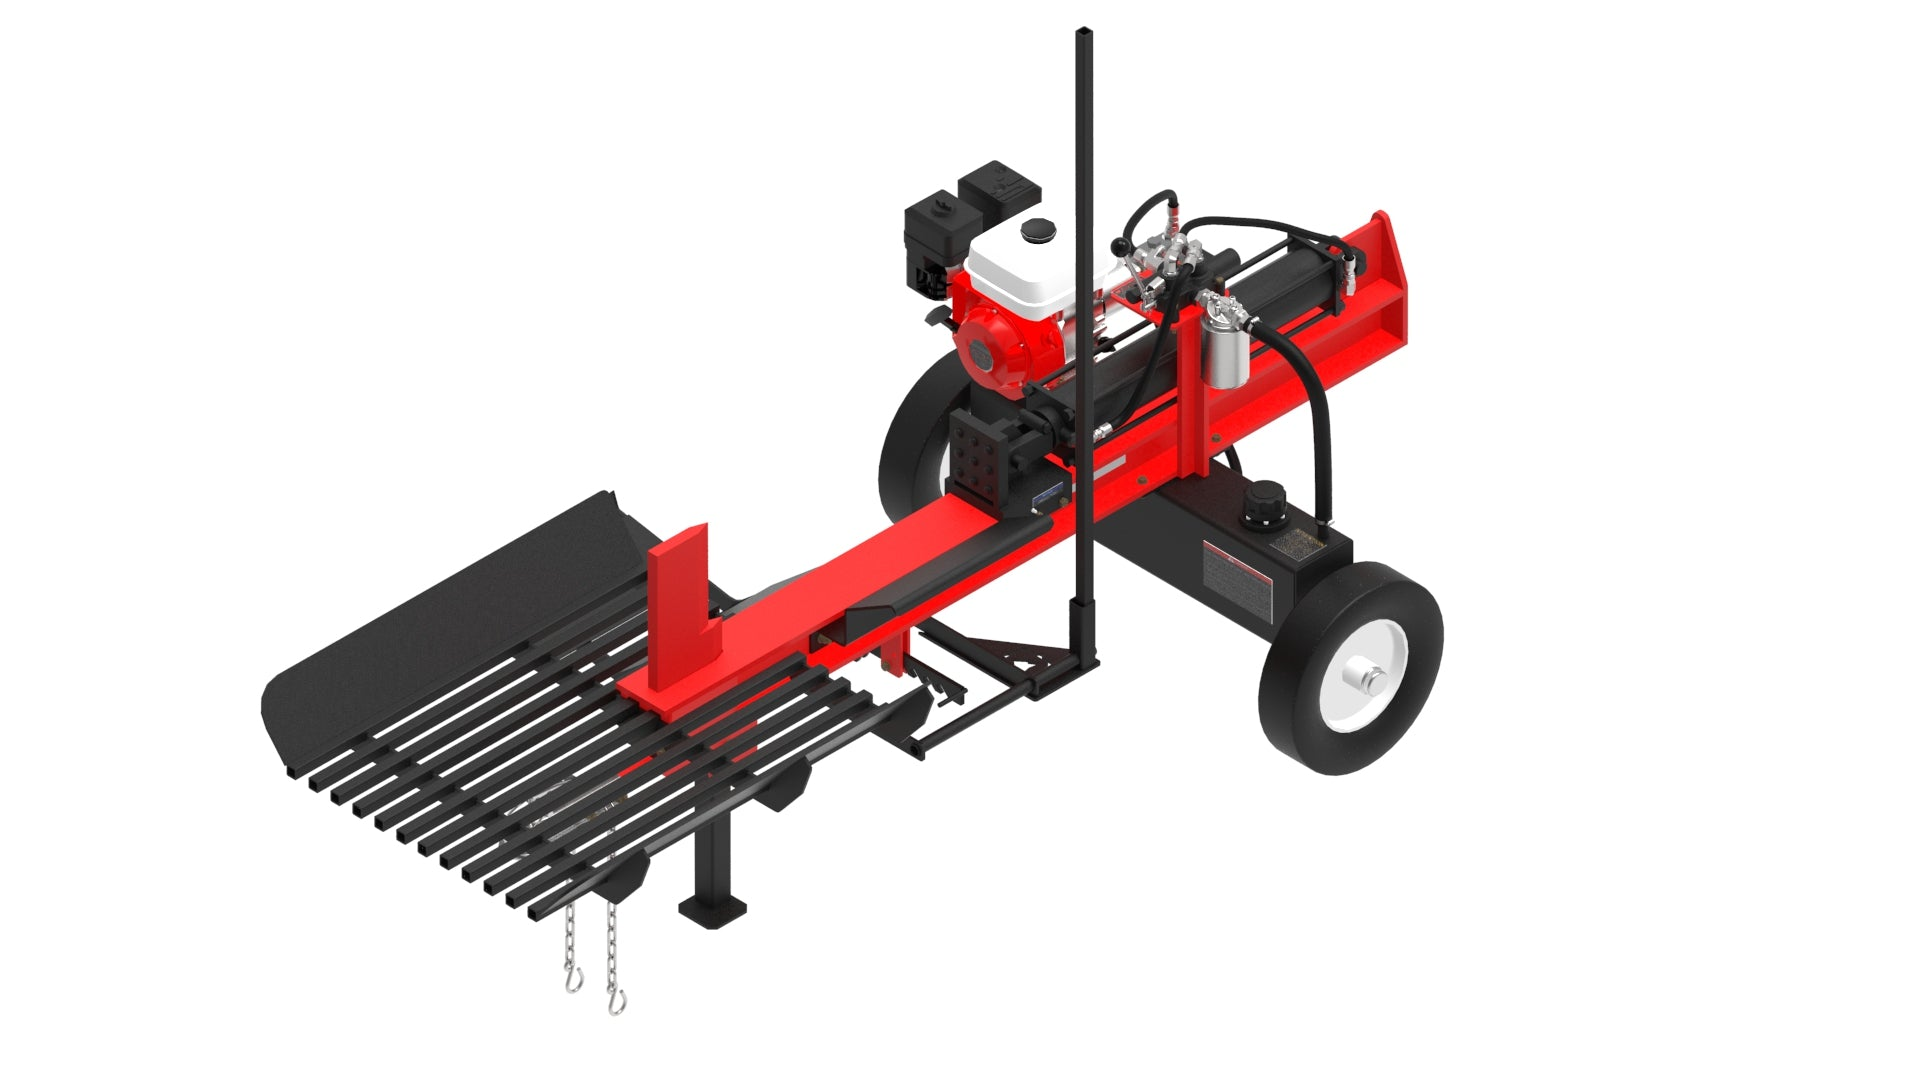 TW-1 Table Grate Log Lift